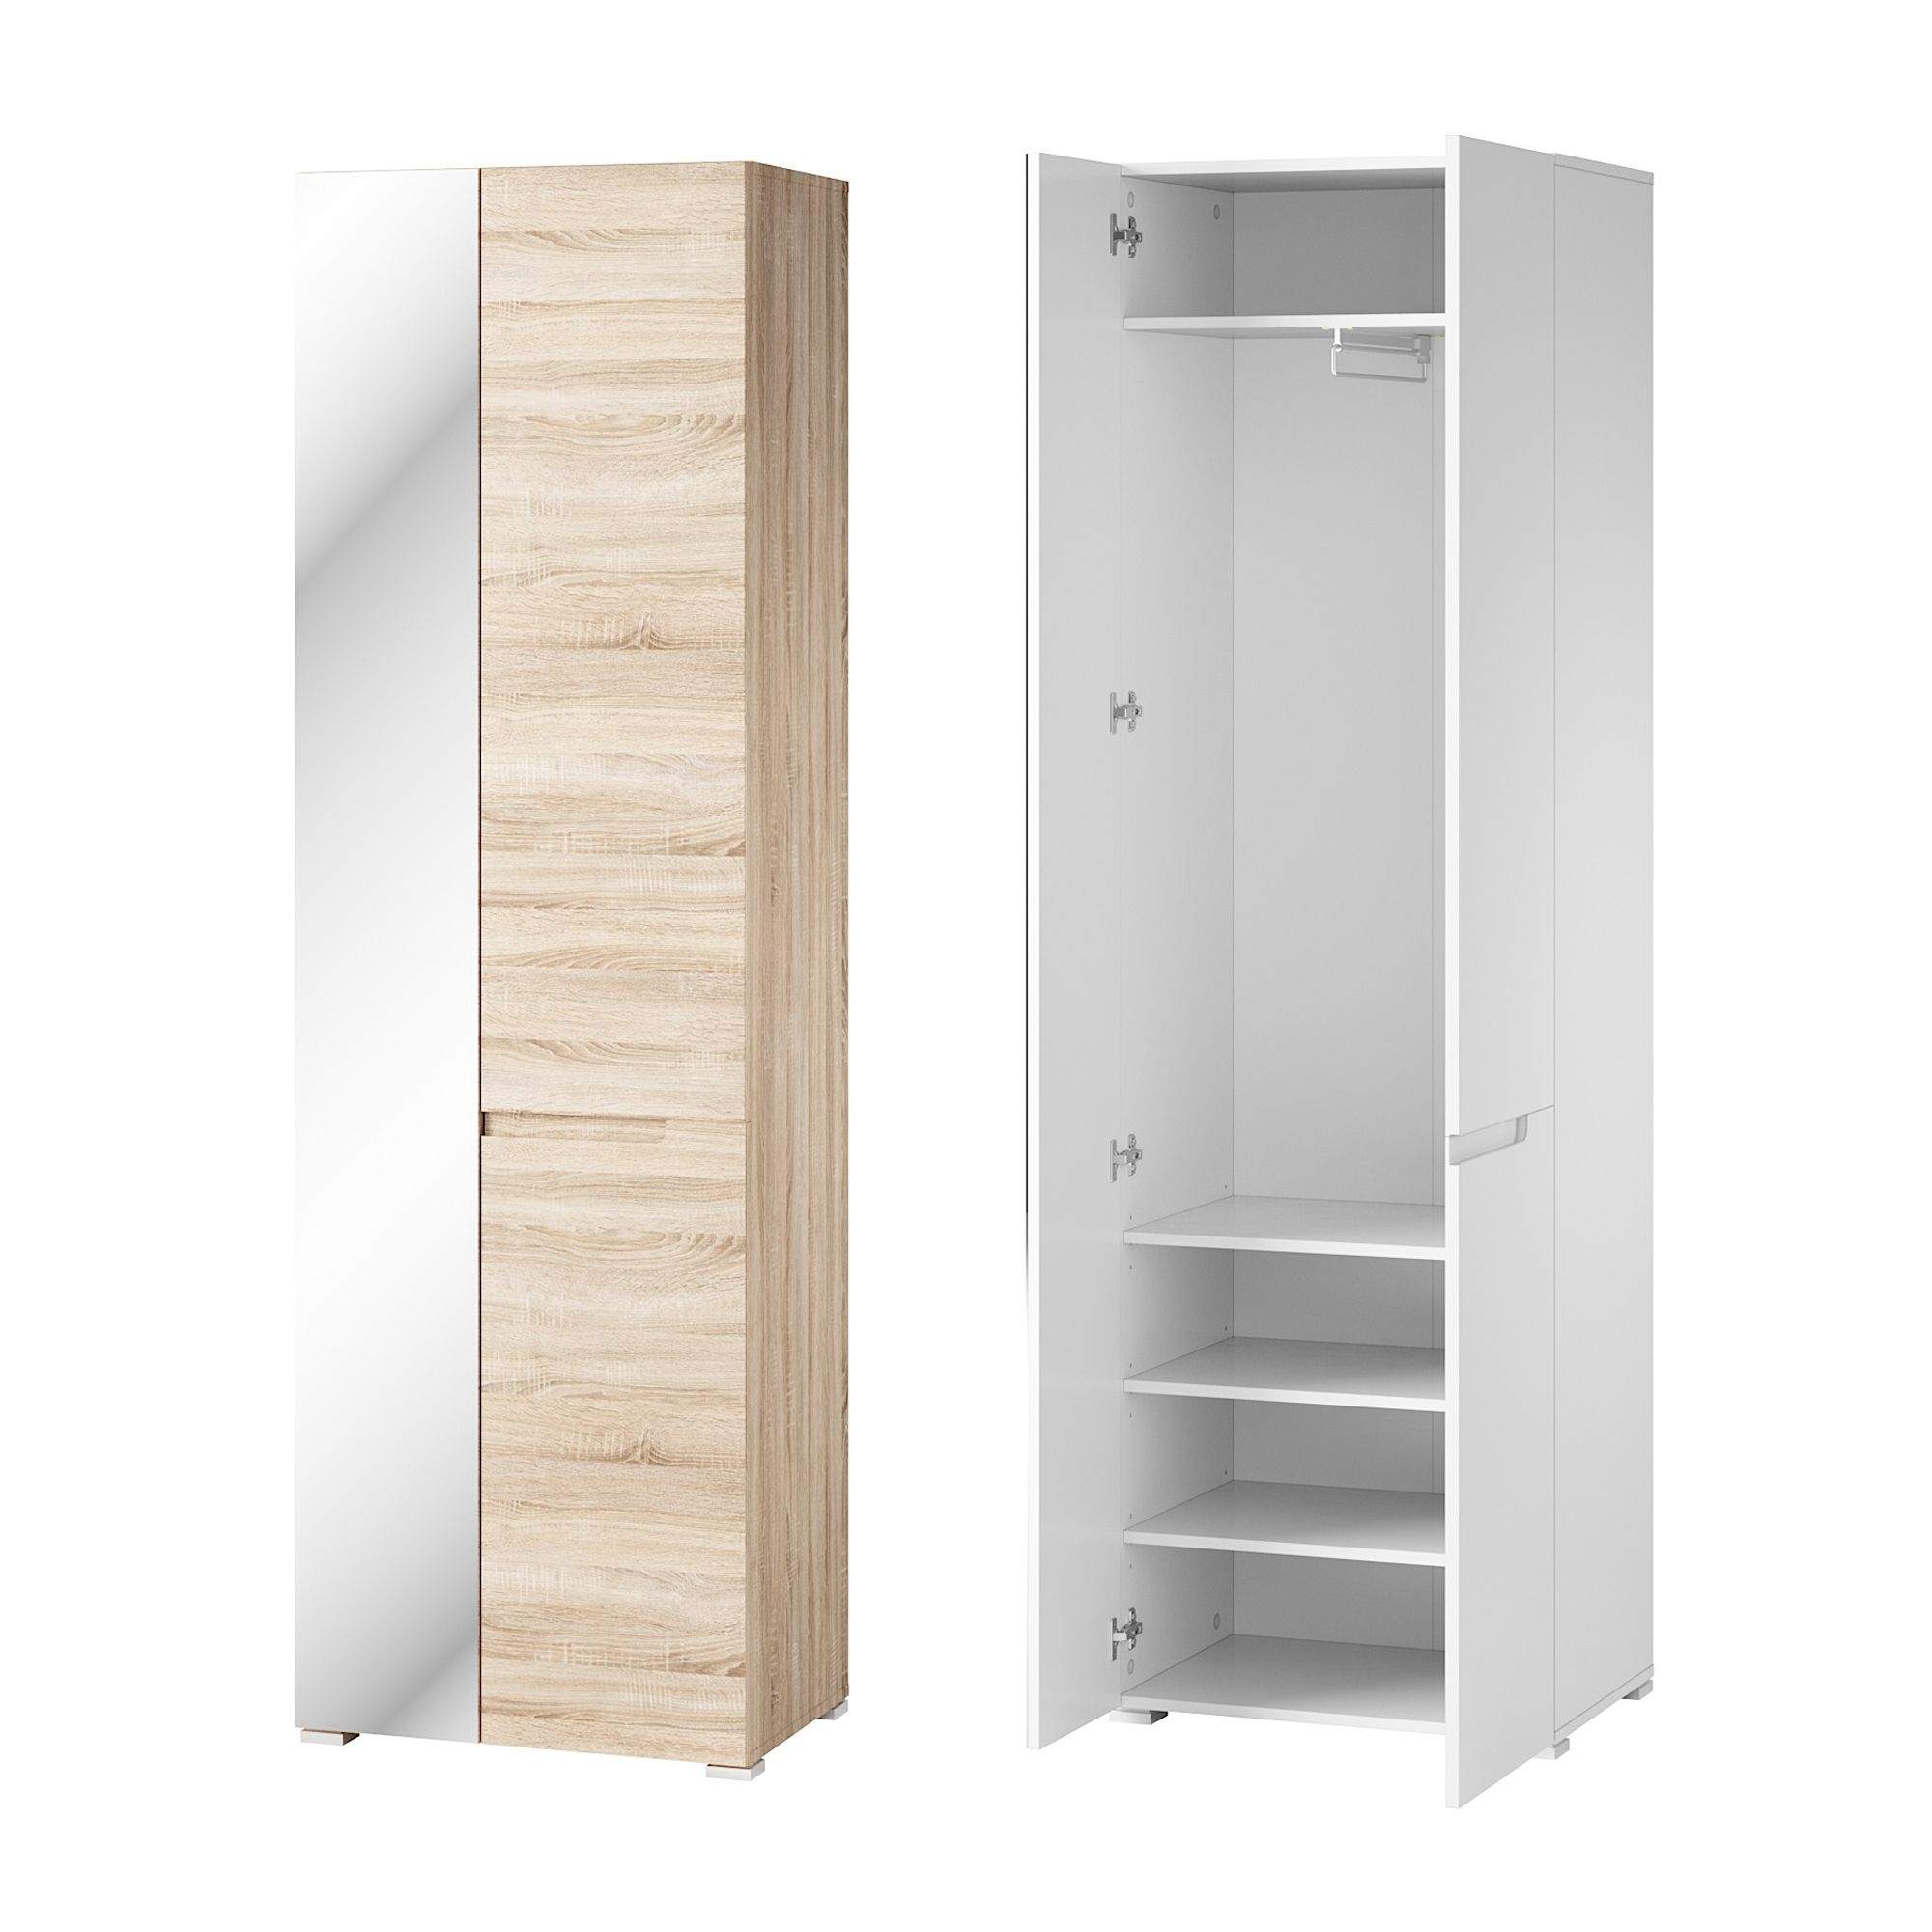 The Wardrobe Perth Perth Sonoma Oak Effect Shallow Narrow Slim Mirrored Wardrobe Szly10